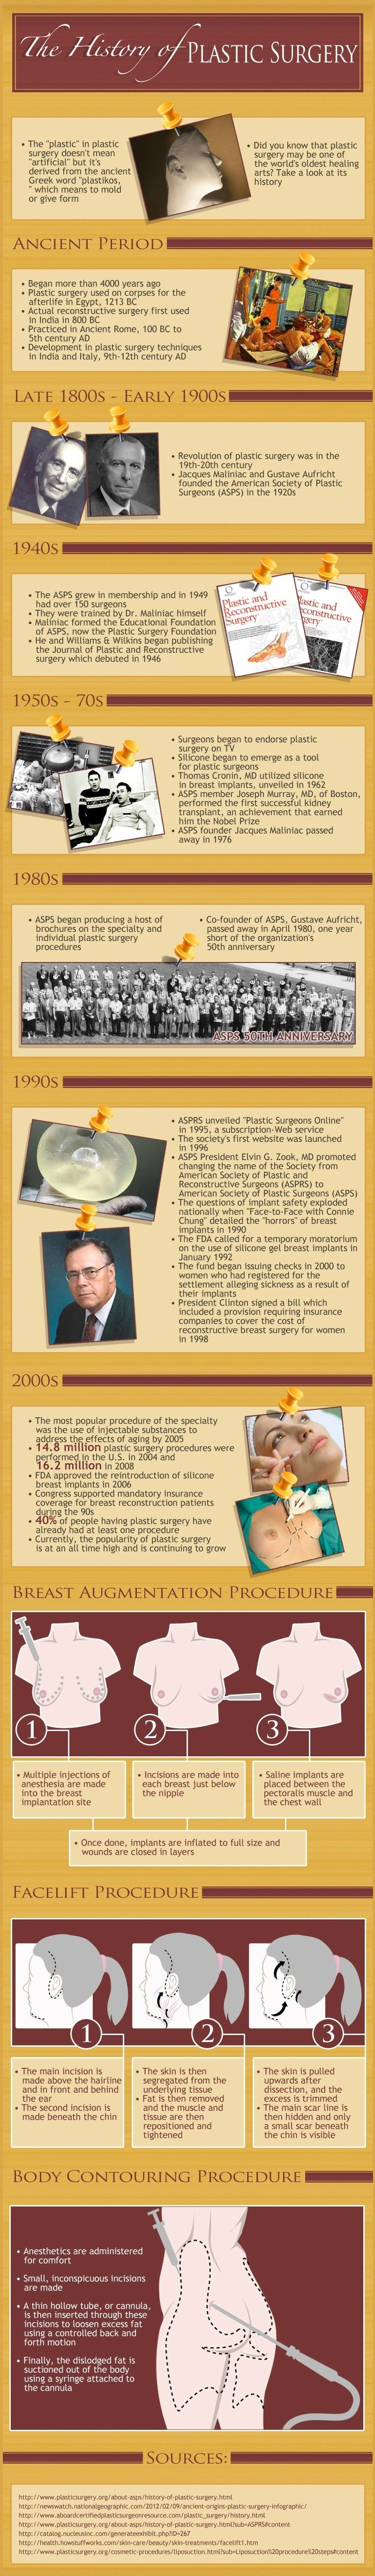 History of Plastic Surgery Infographic